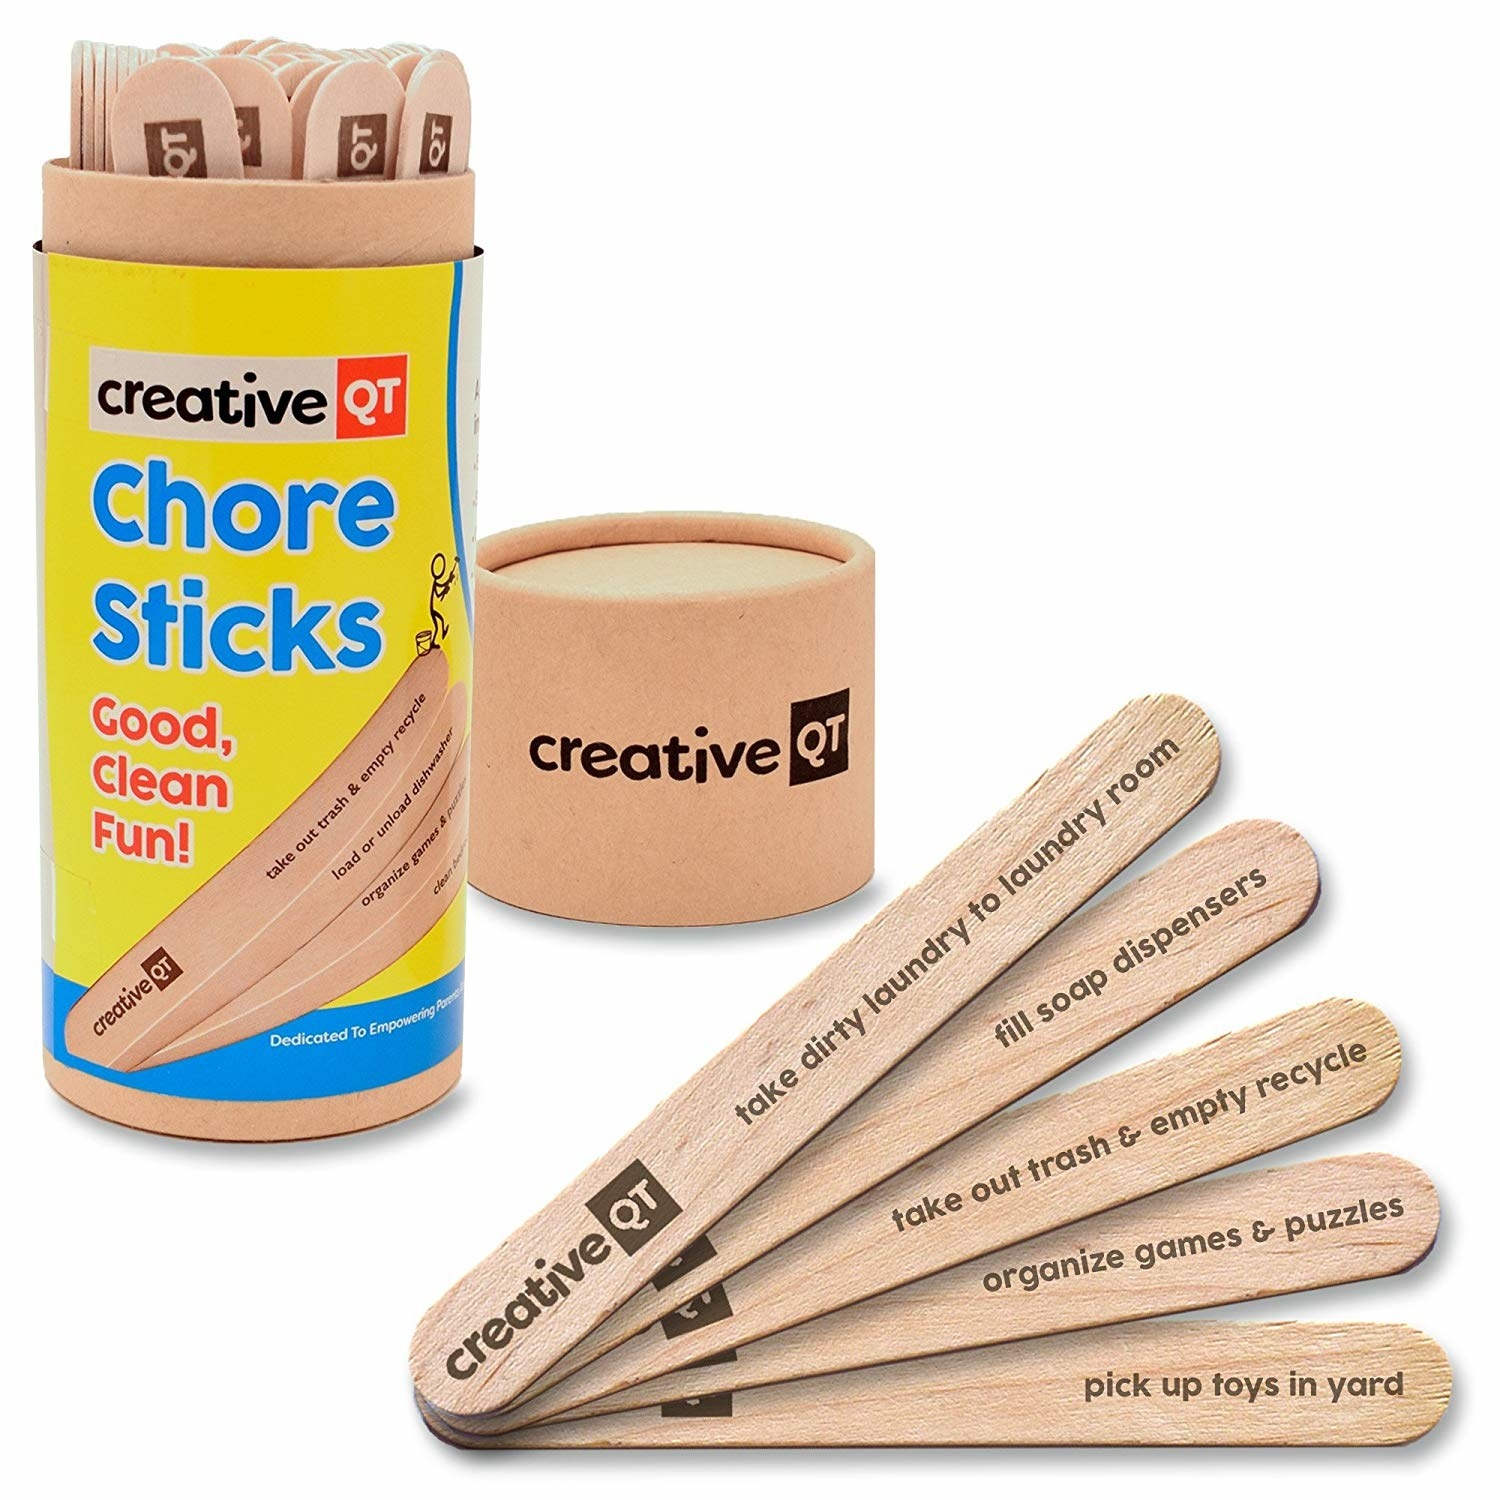 sticks that say things like take dirty laundry to the laundry room and organize games and puzzles